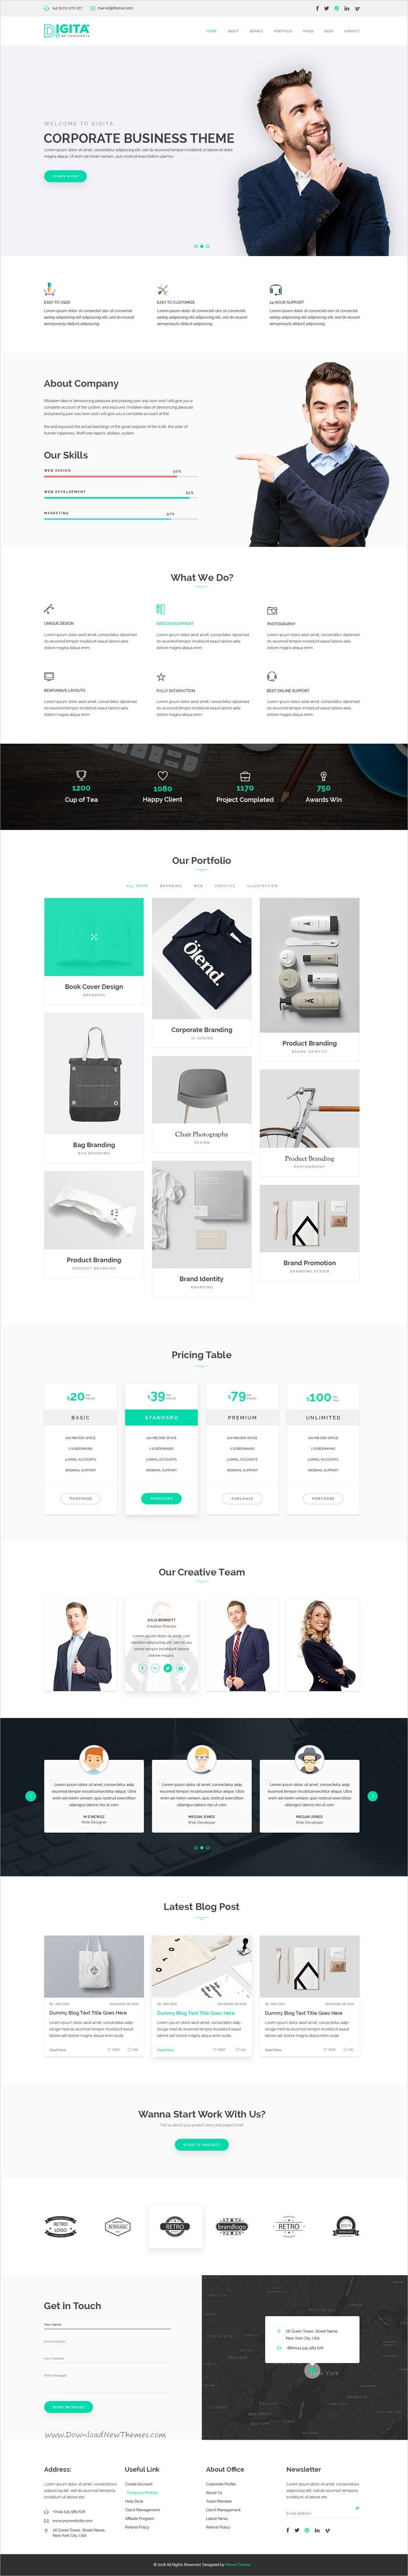 WorkPro - Creative Business Landing Page Template